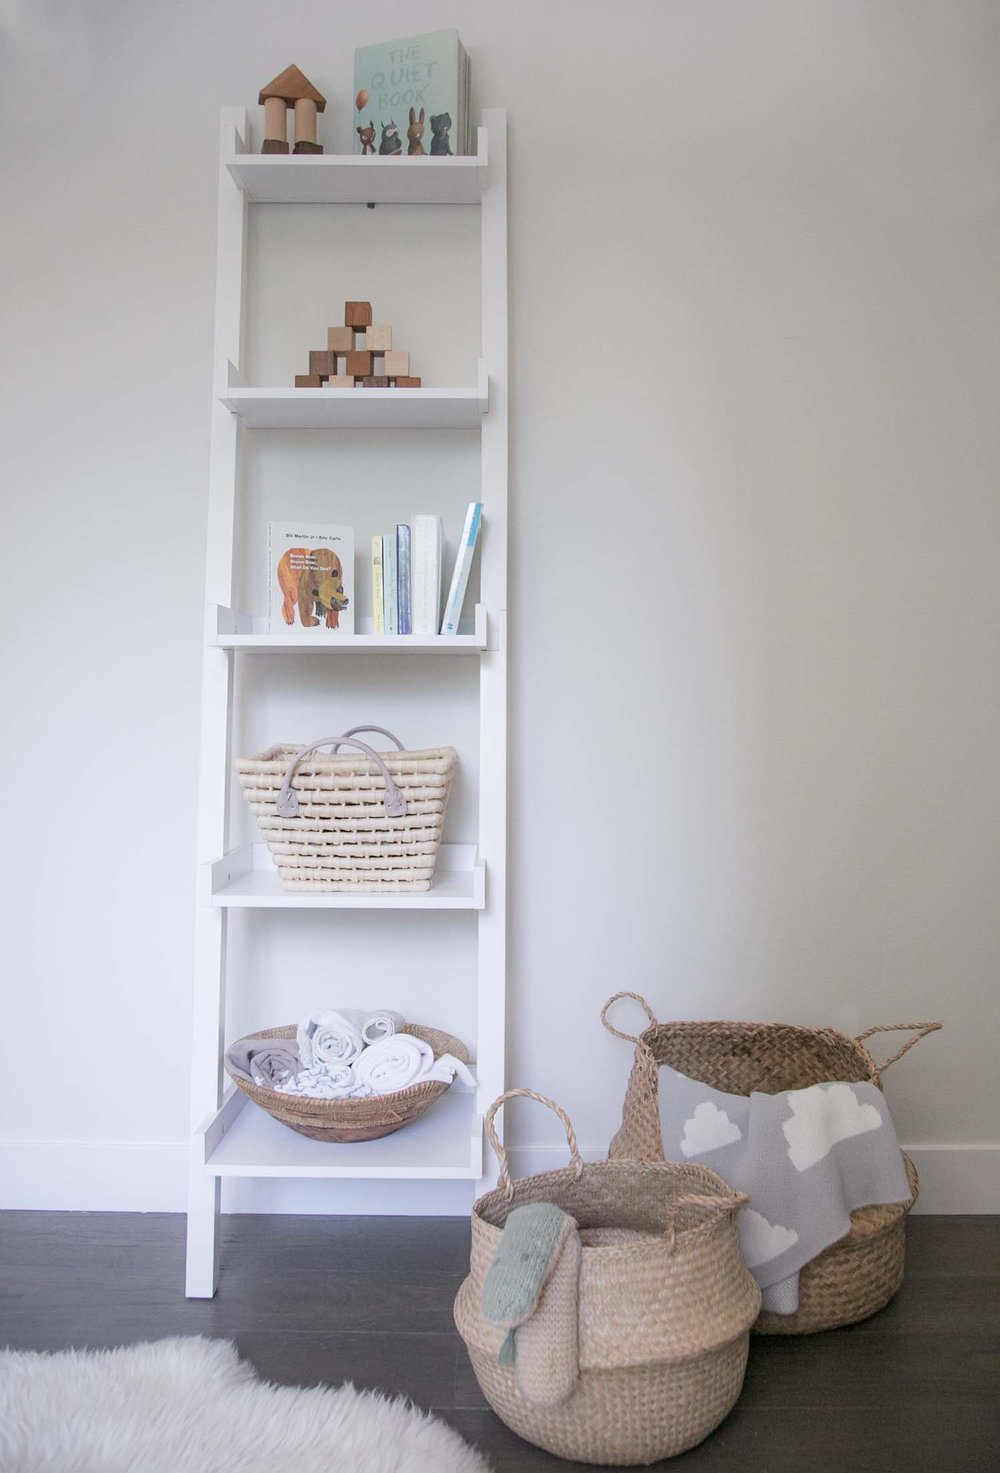 A simple white ladder shelf in a children's room